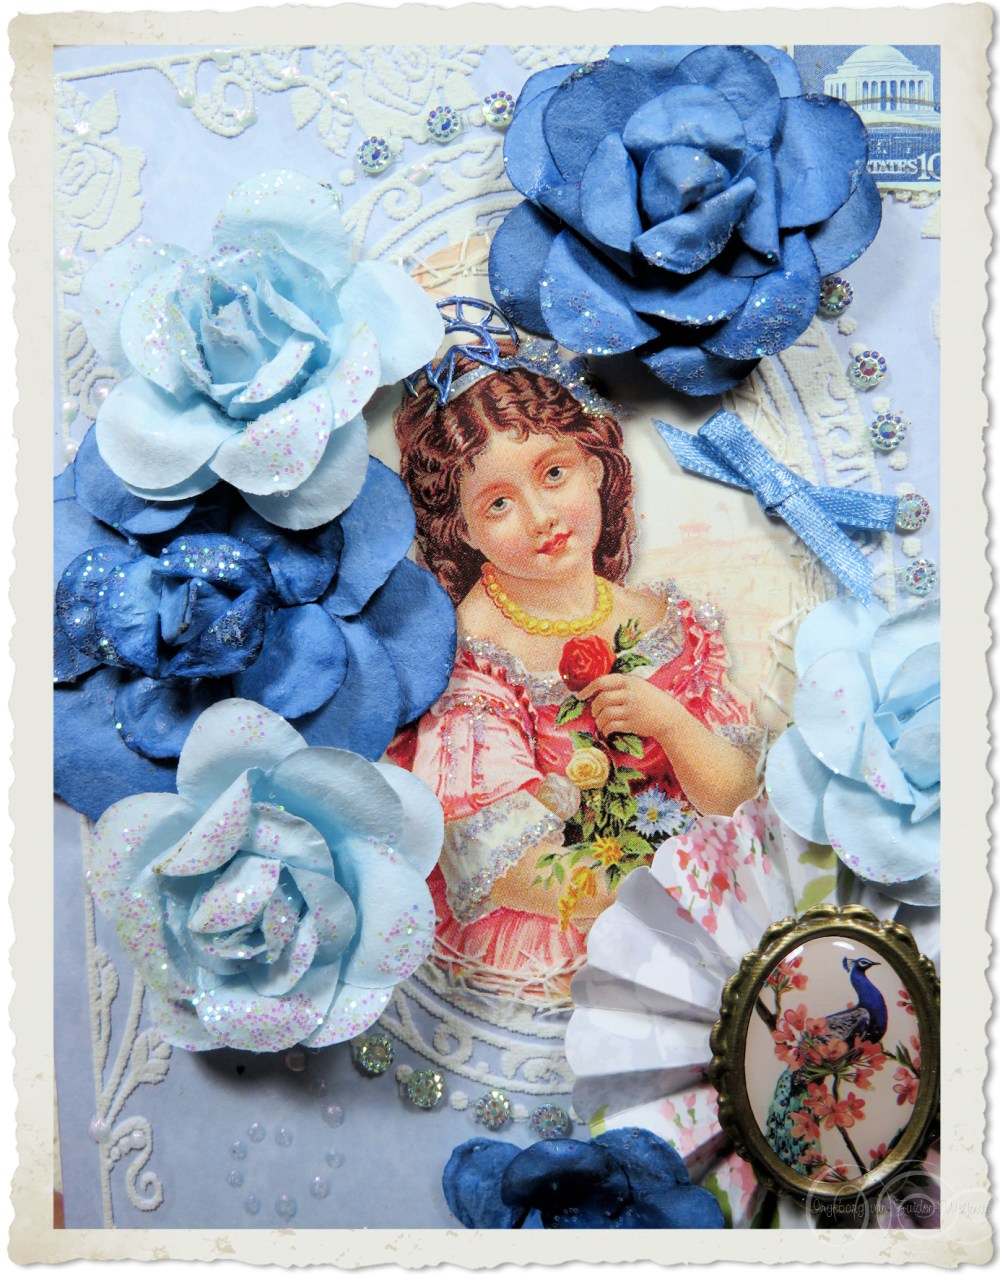 Details of blue roses and fairy girl